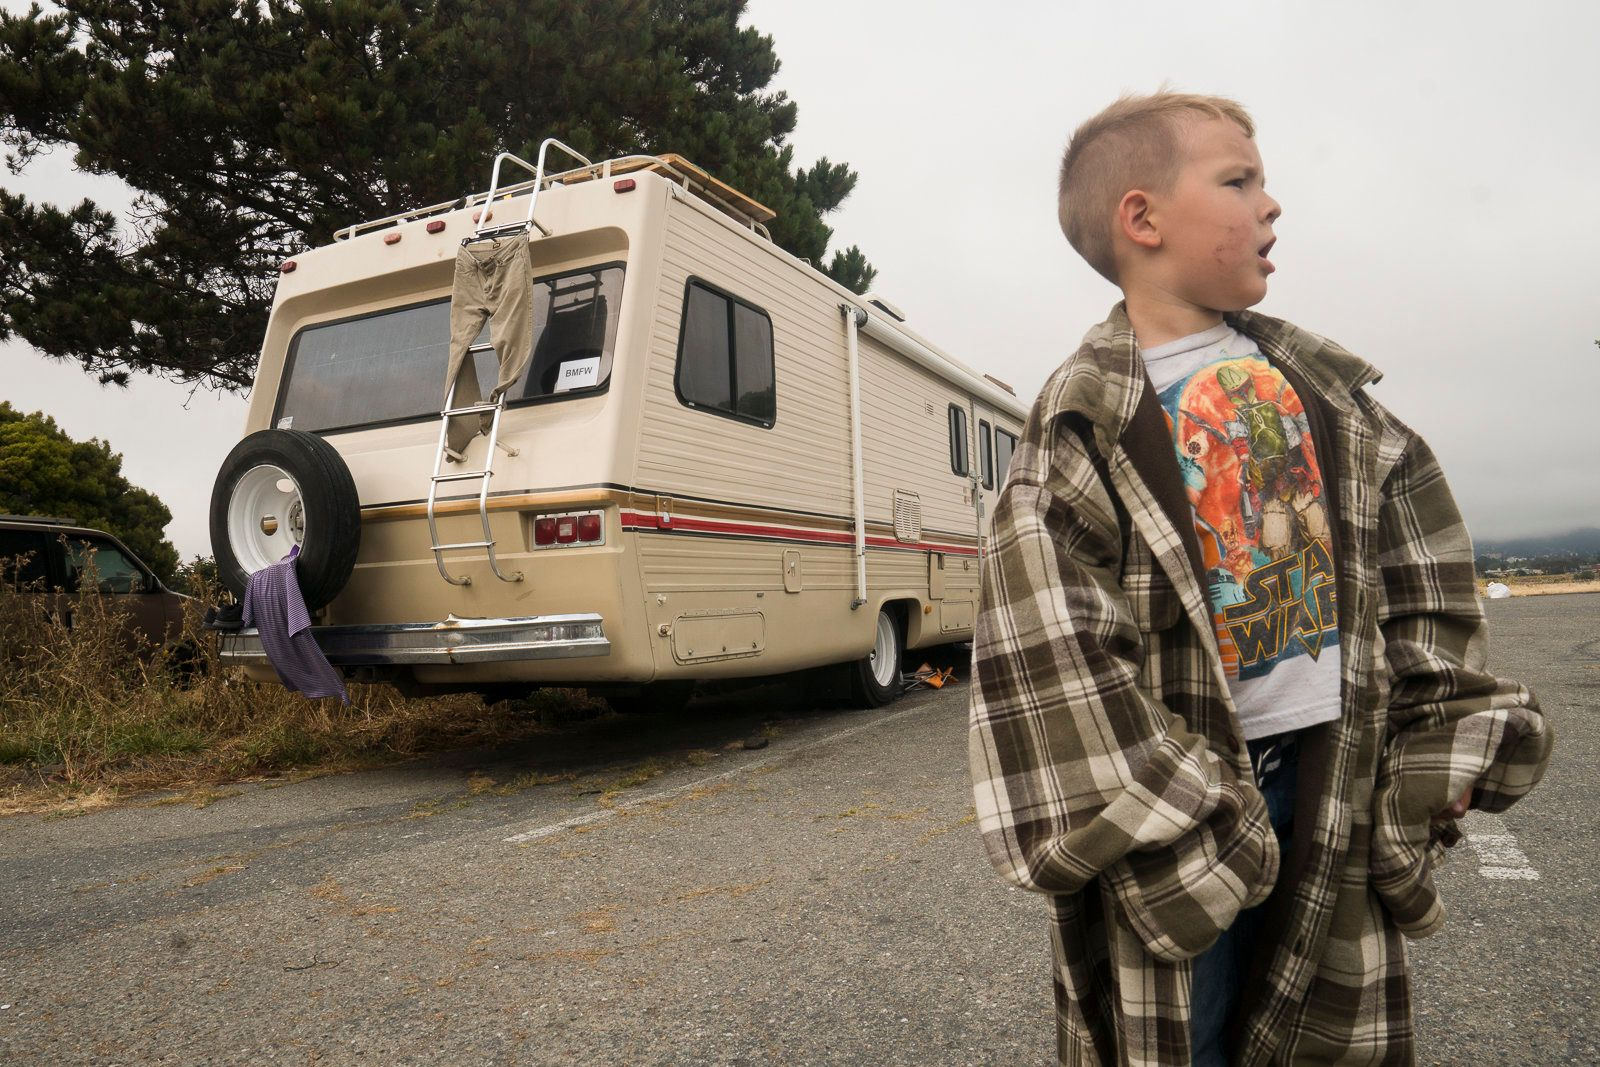 Thomas Bockover The Bockover family moved into an RV after their rent price increased